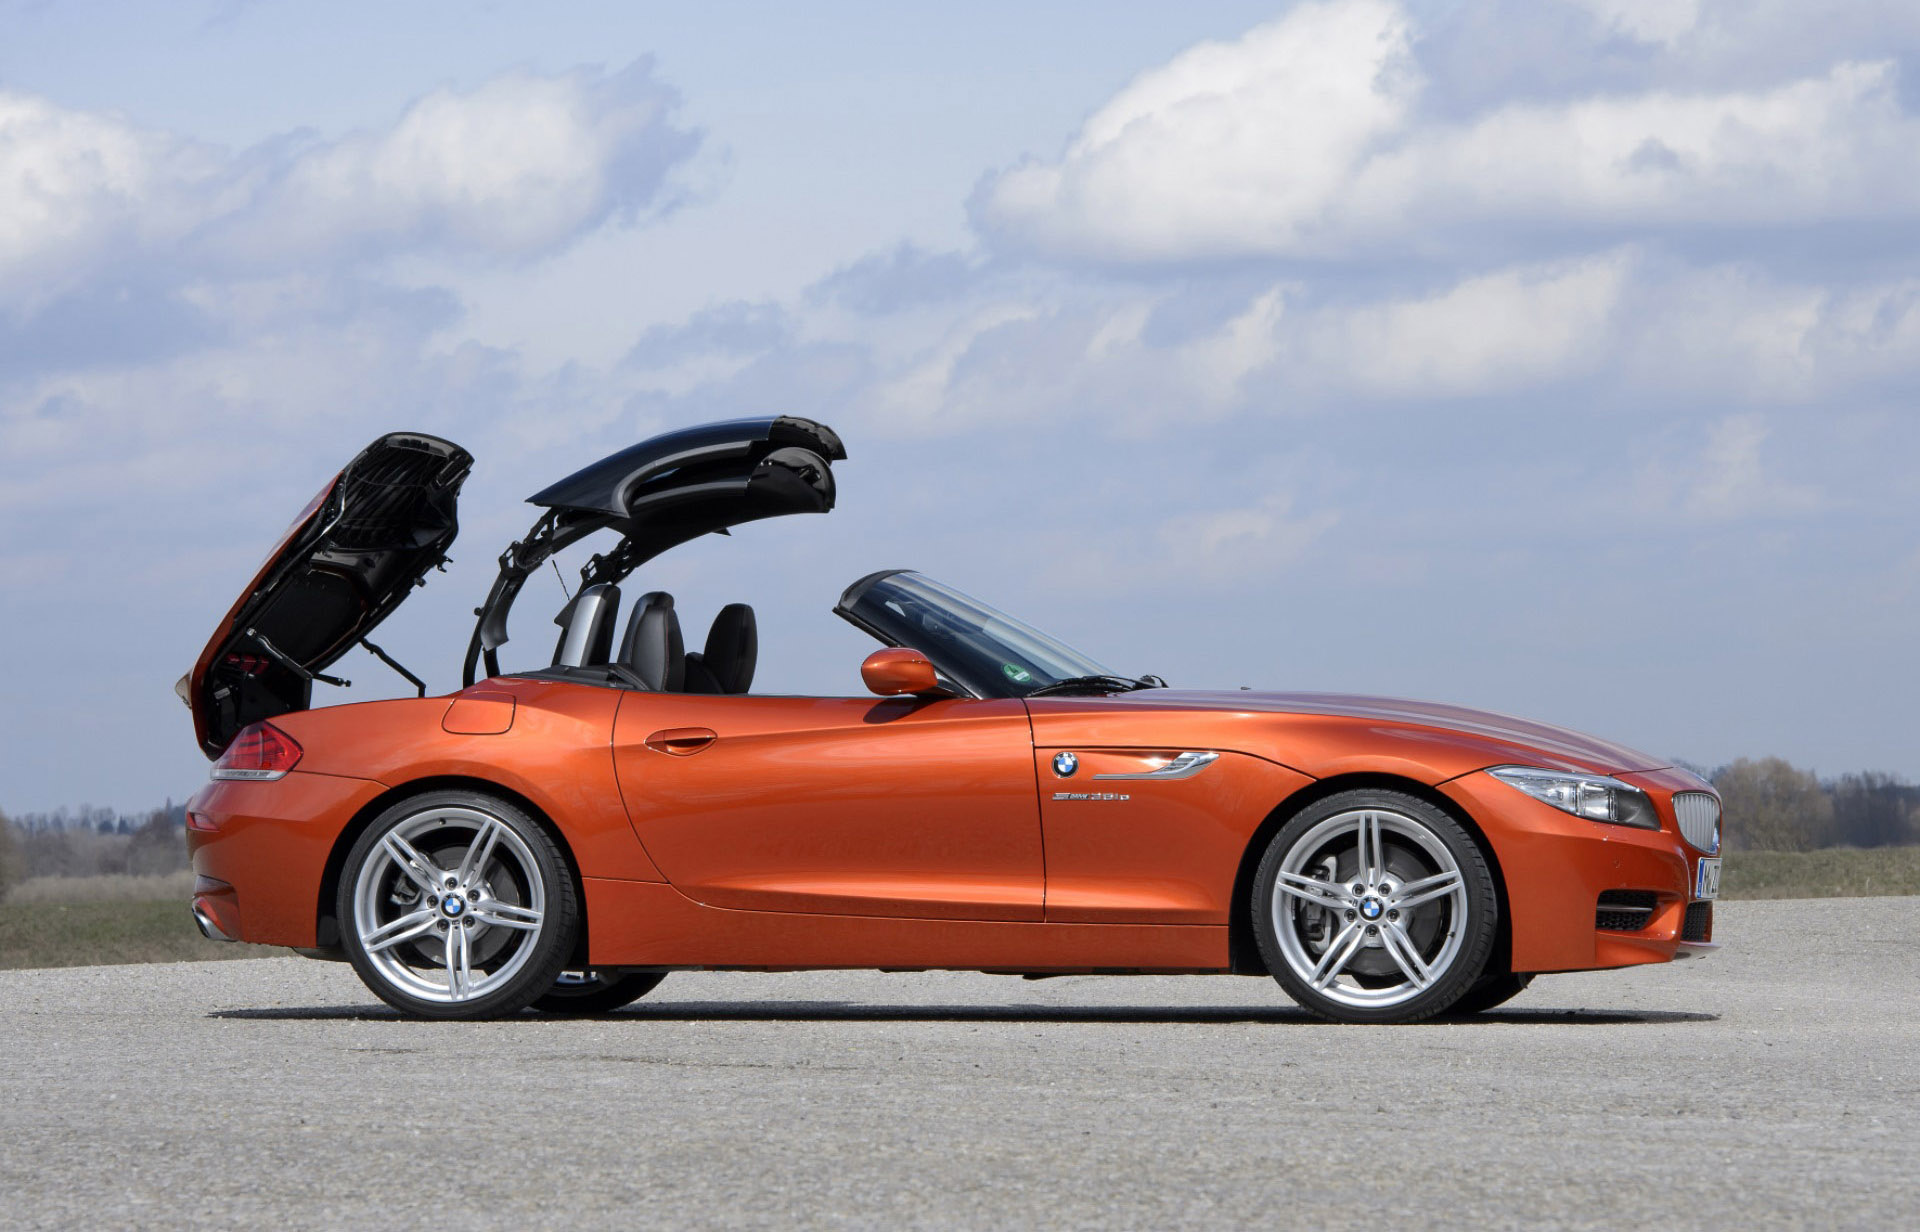 2016 bmw z4 e89 sdrive35 in valencia orange metallic picture 133512. Black Bedroom Furniture Sets. Home Design Ideas